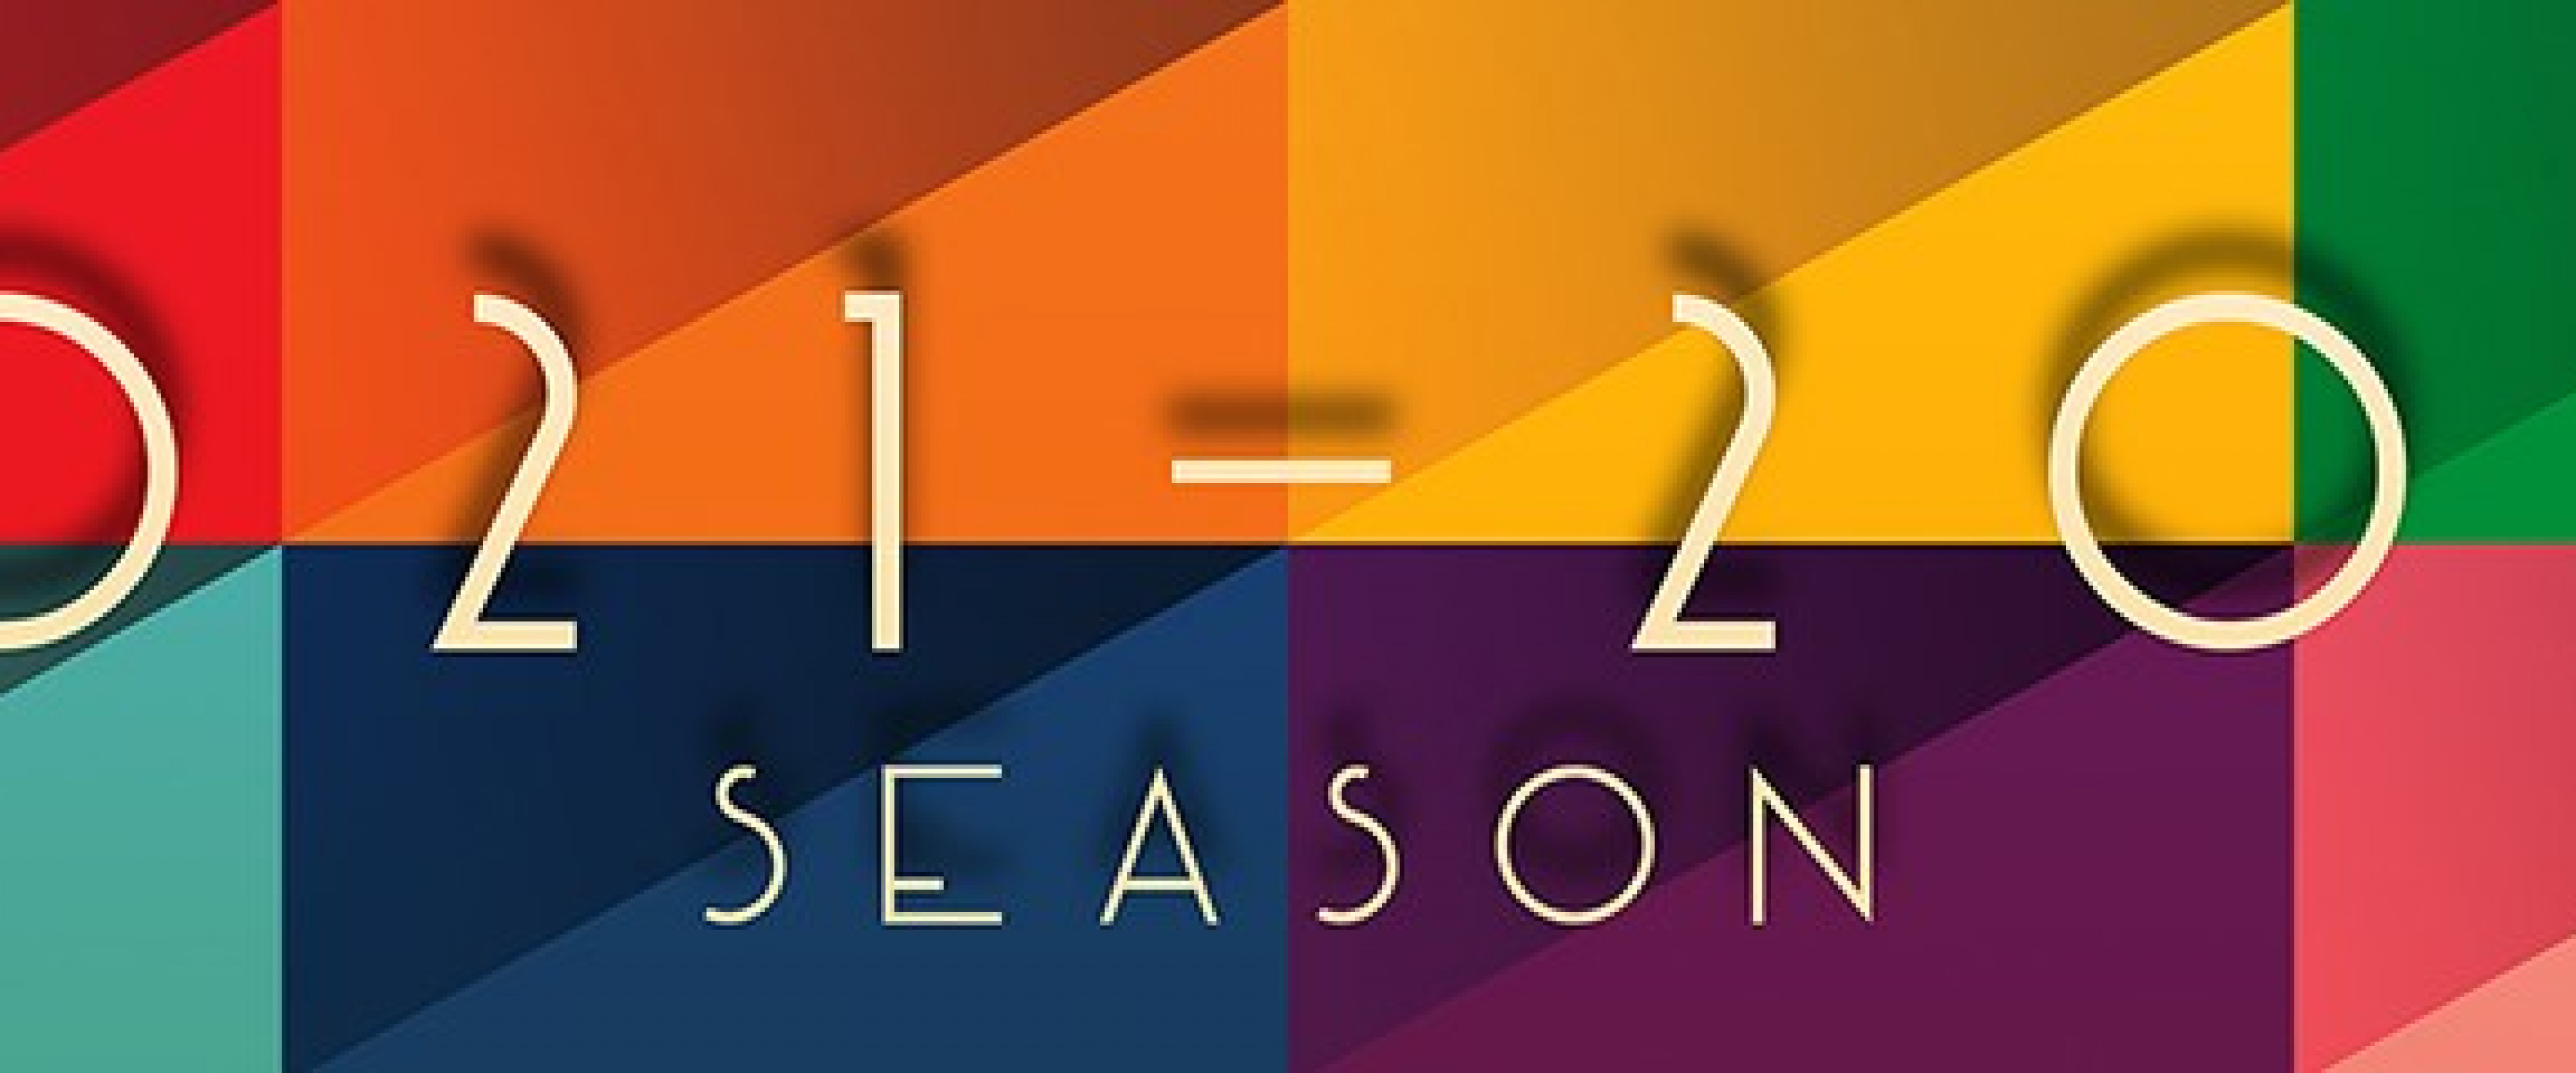 Rainbow colors with 2021-2022 Season in graphic.